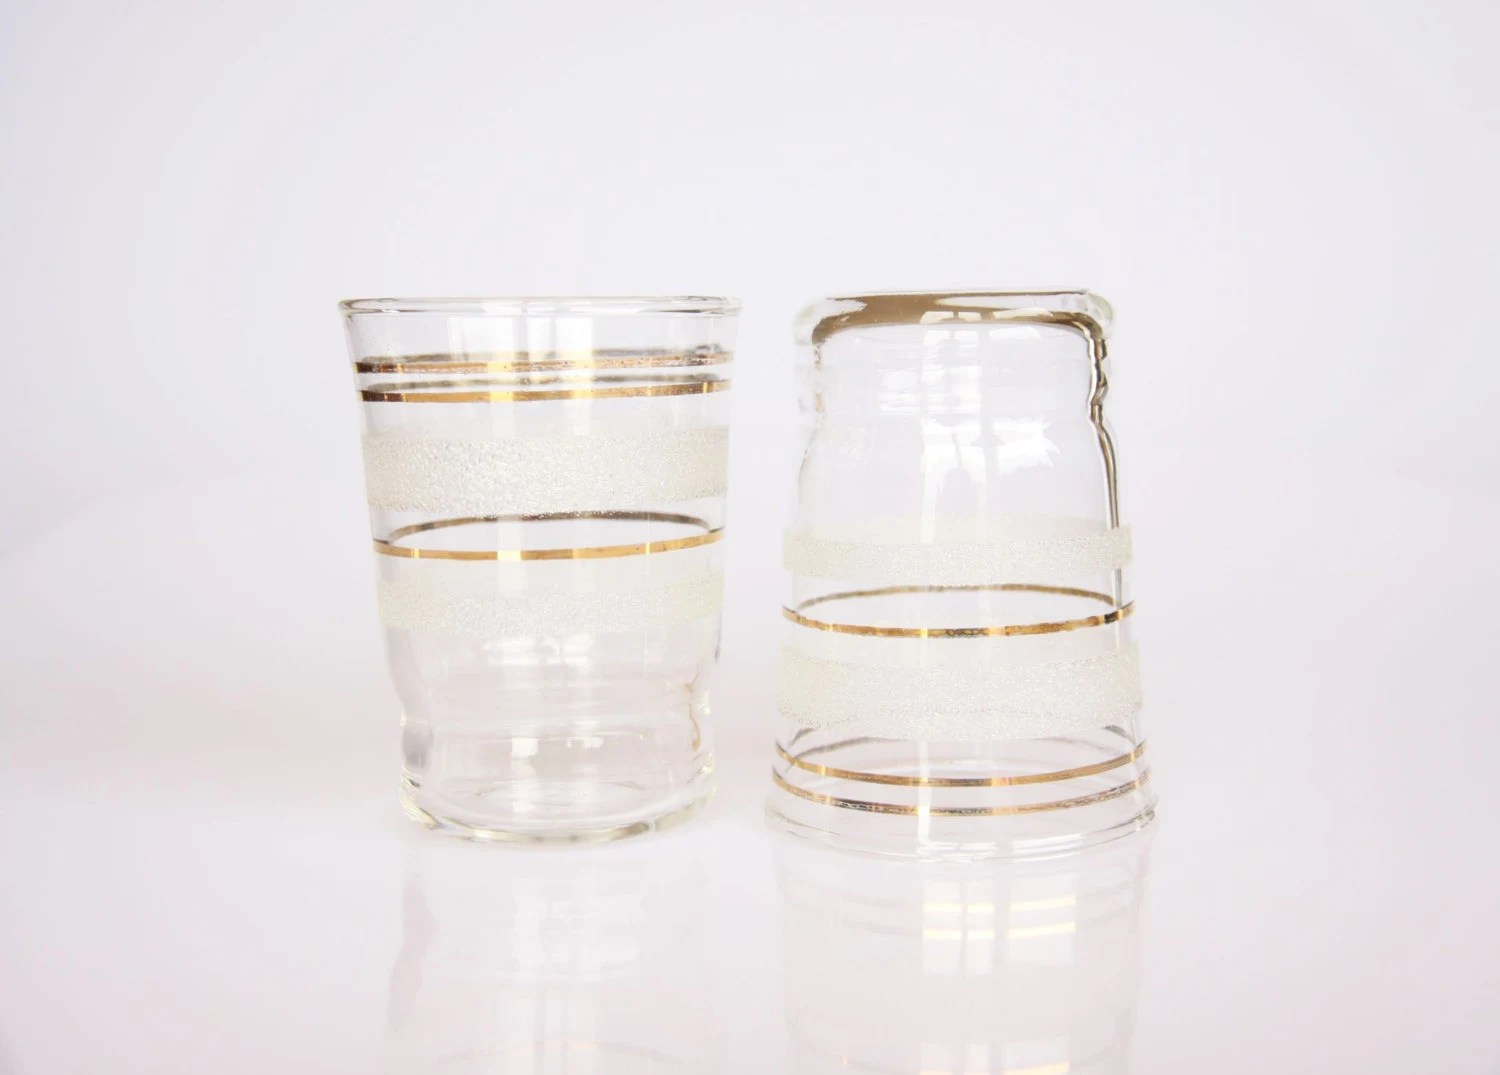 Gold rimmed etched drinking glasses 1950s barware by